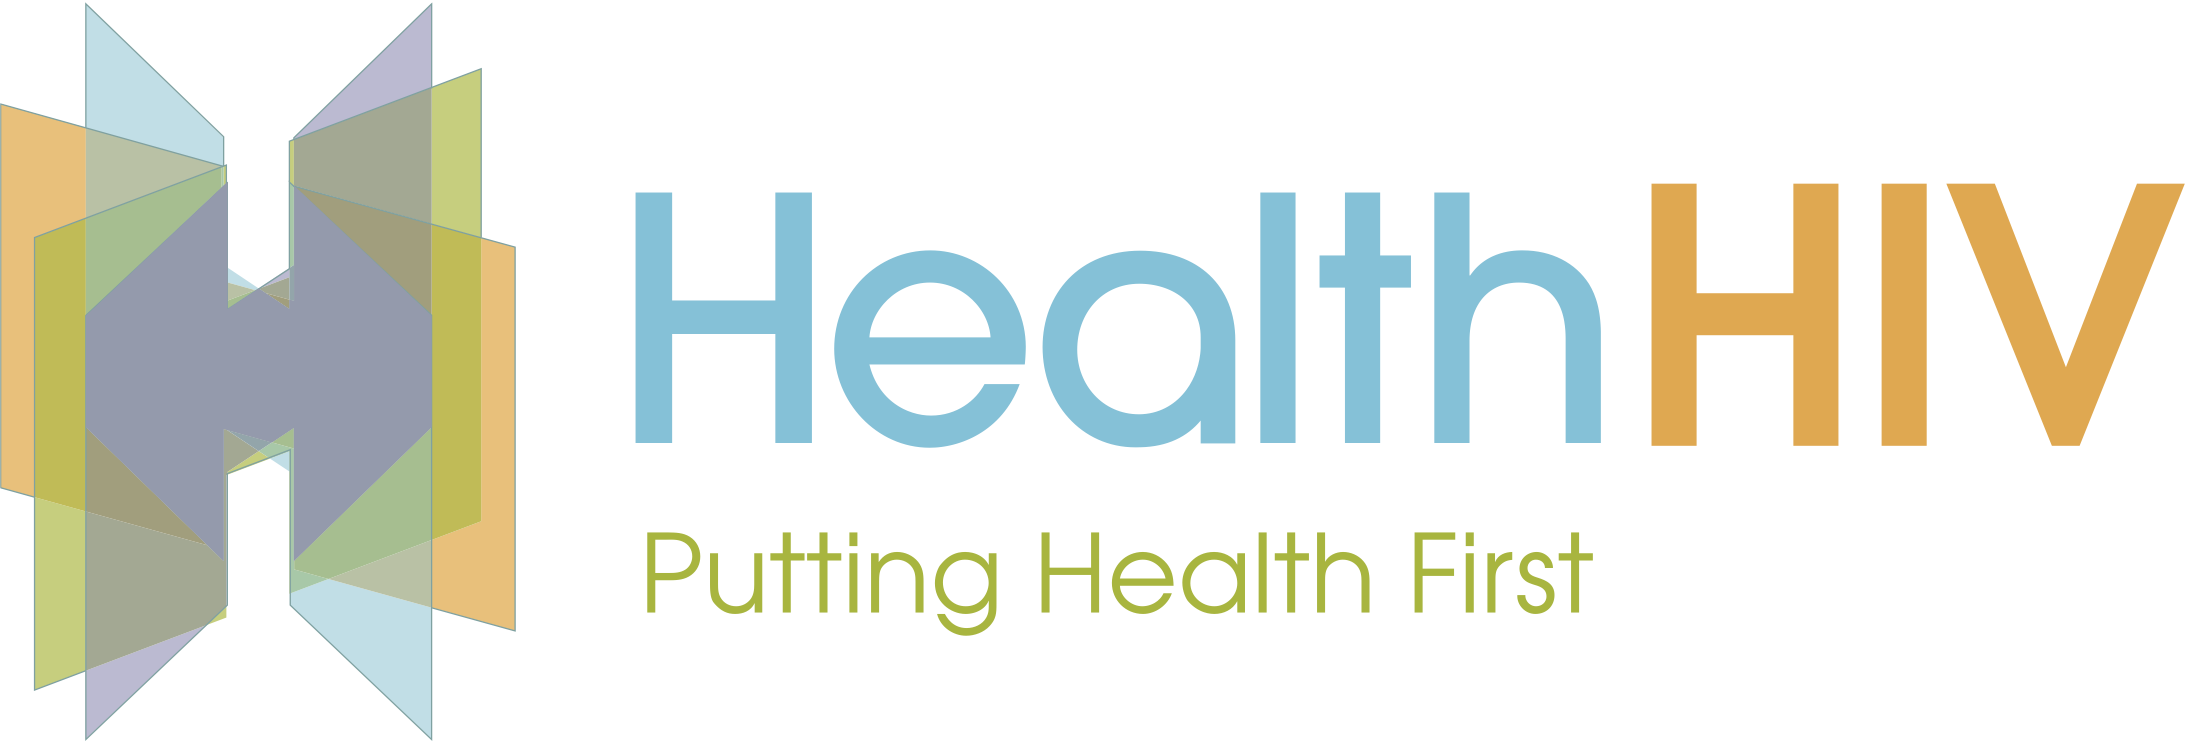 2015-07-20-healthhiv-logo_name-and-tag